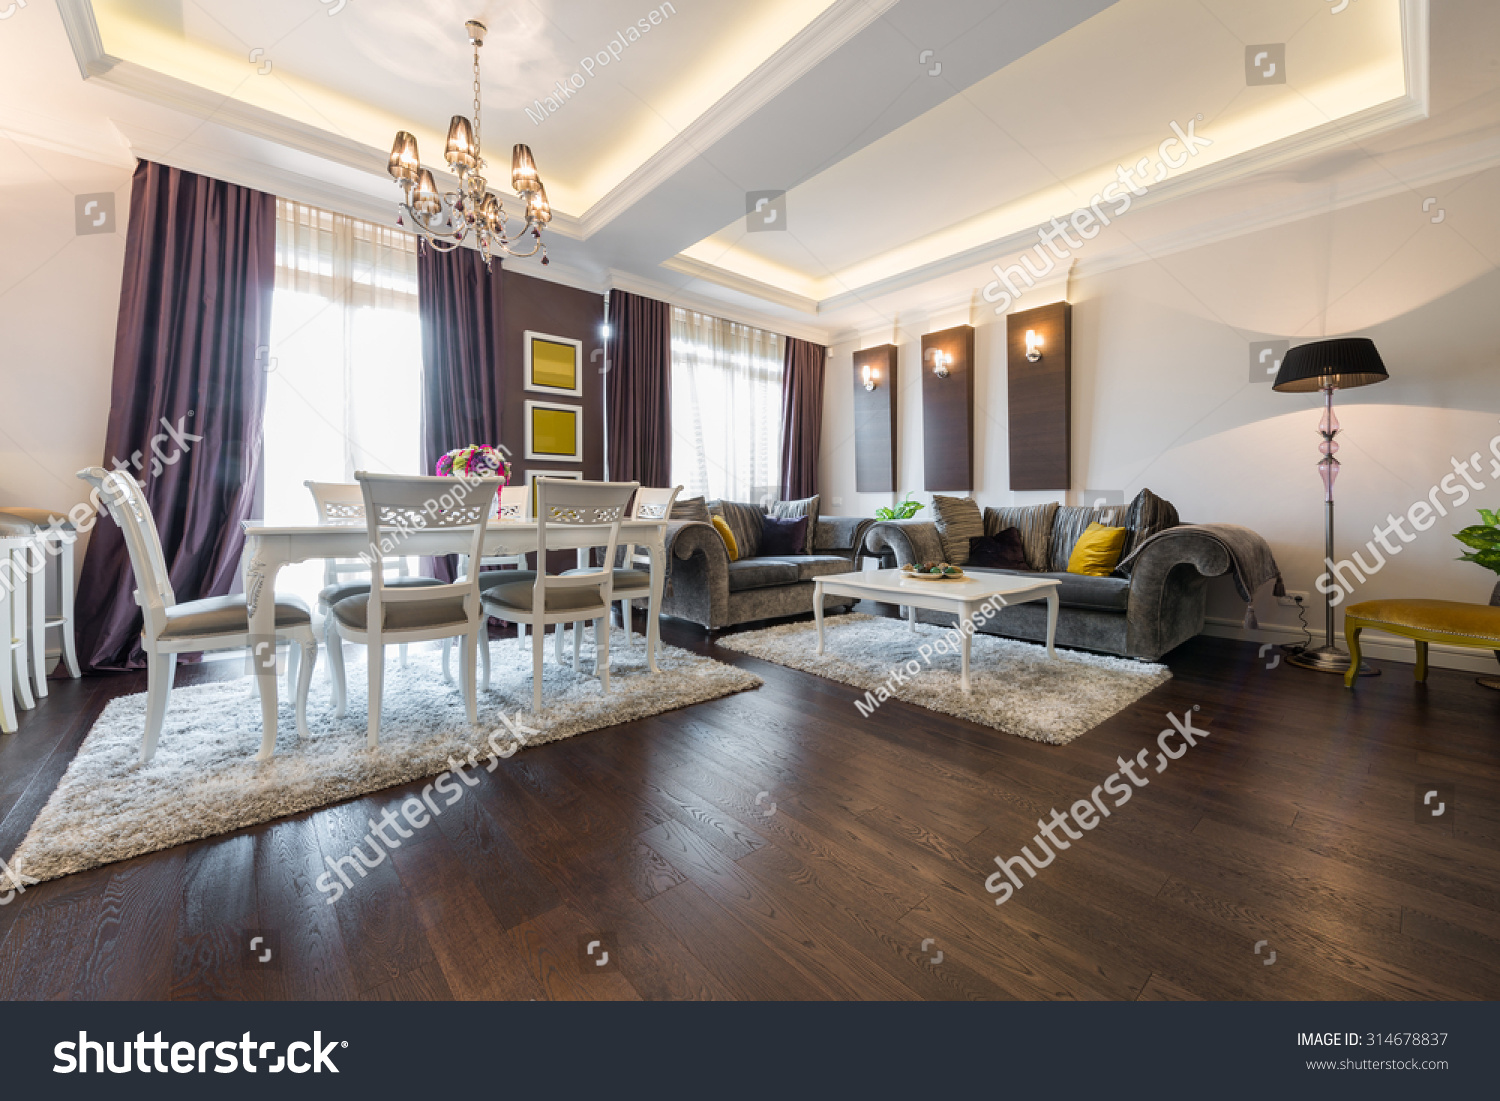 Luxury apartment interior stock photo 314678837 shutterstock for Luxury flats interior